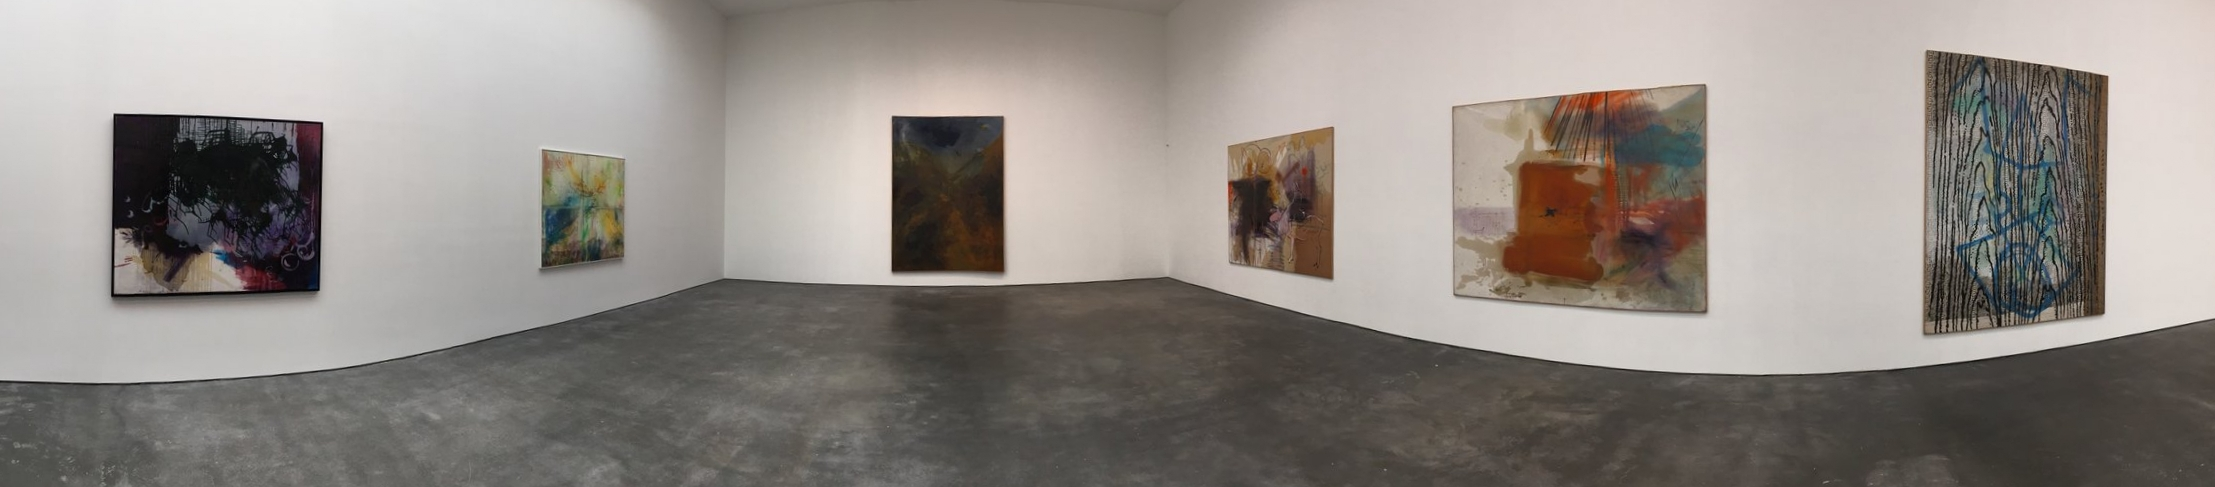 Exhibition Images, Sigmar Polke,  Eine Winterreise,  David Zwirner Gallery, New York Photo Credits: Cincala Art Advisory